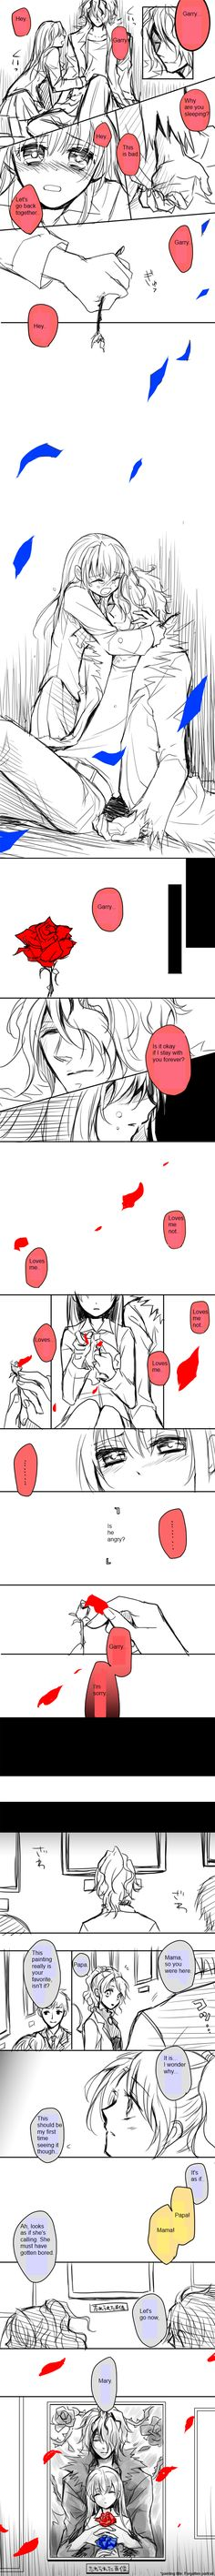 Ib Comic 2 by Kokoro-Kiseki1 on deviantART >>>>>>>> that's so sad D': I love Gary and Ib